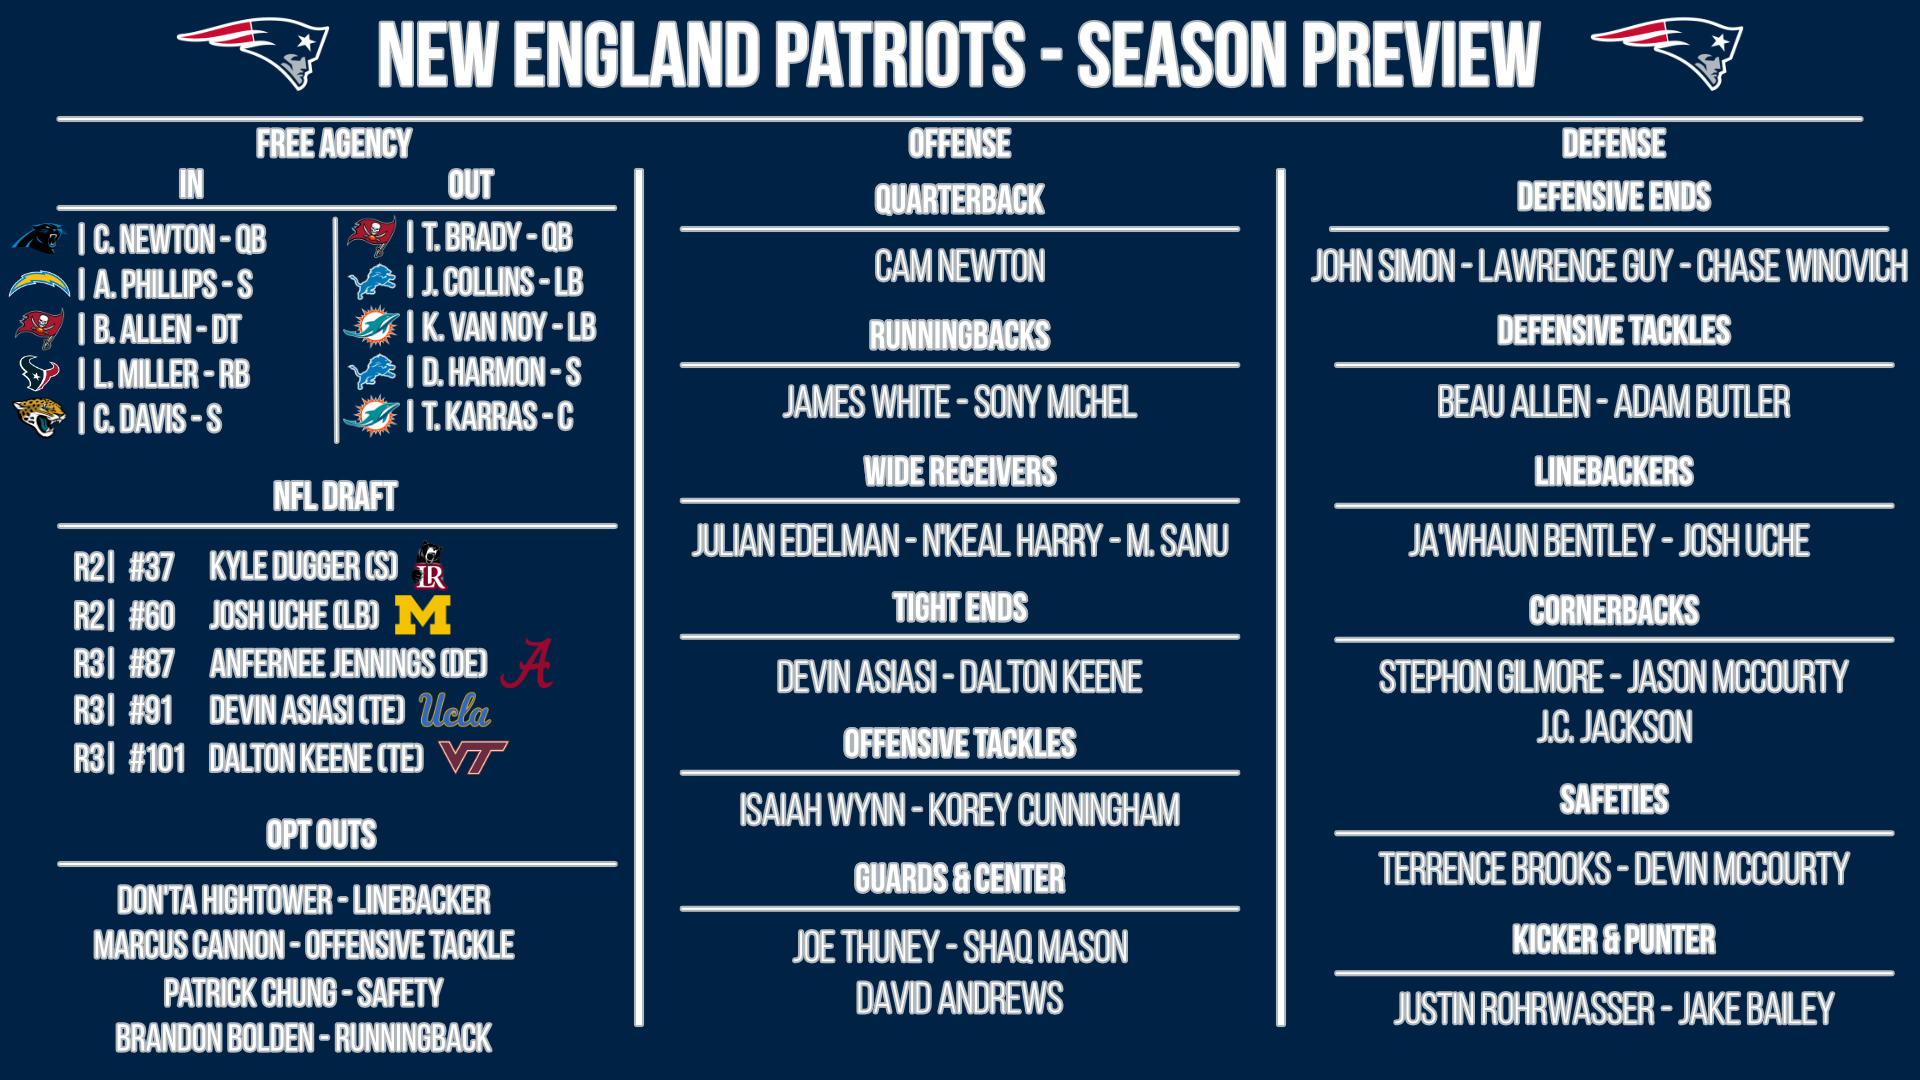 New England Patriots preview